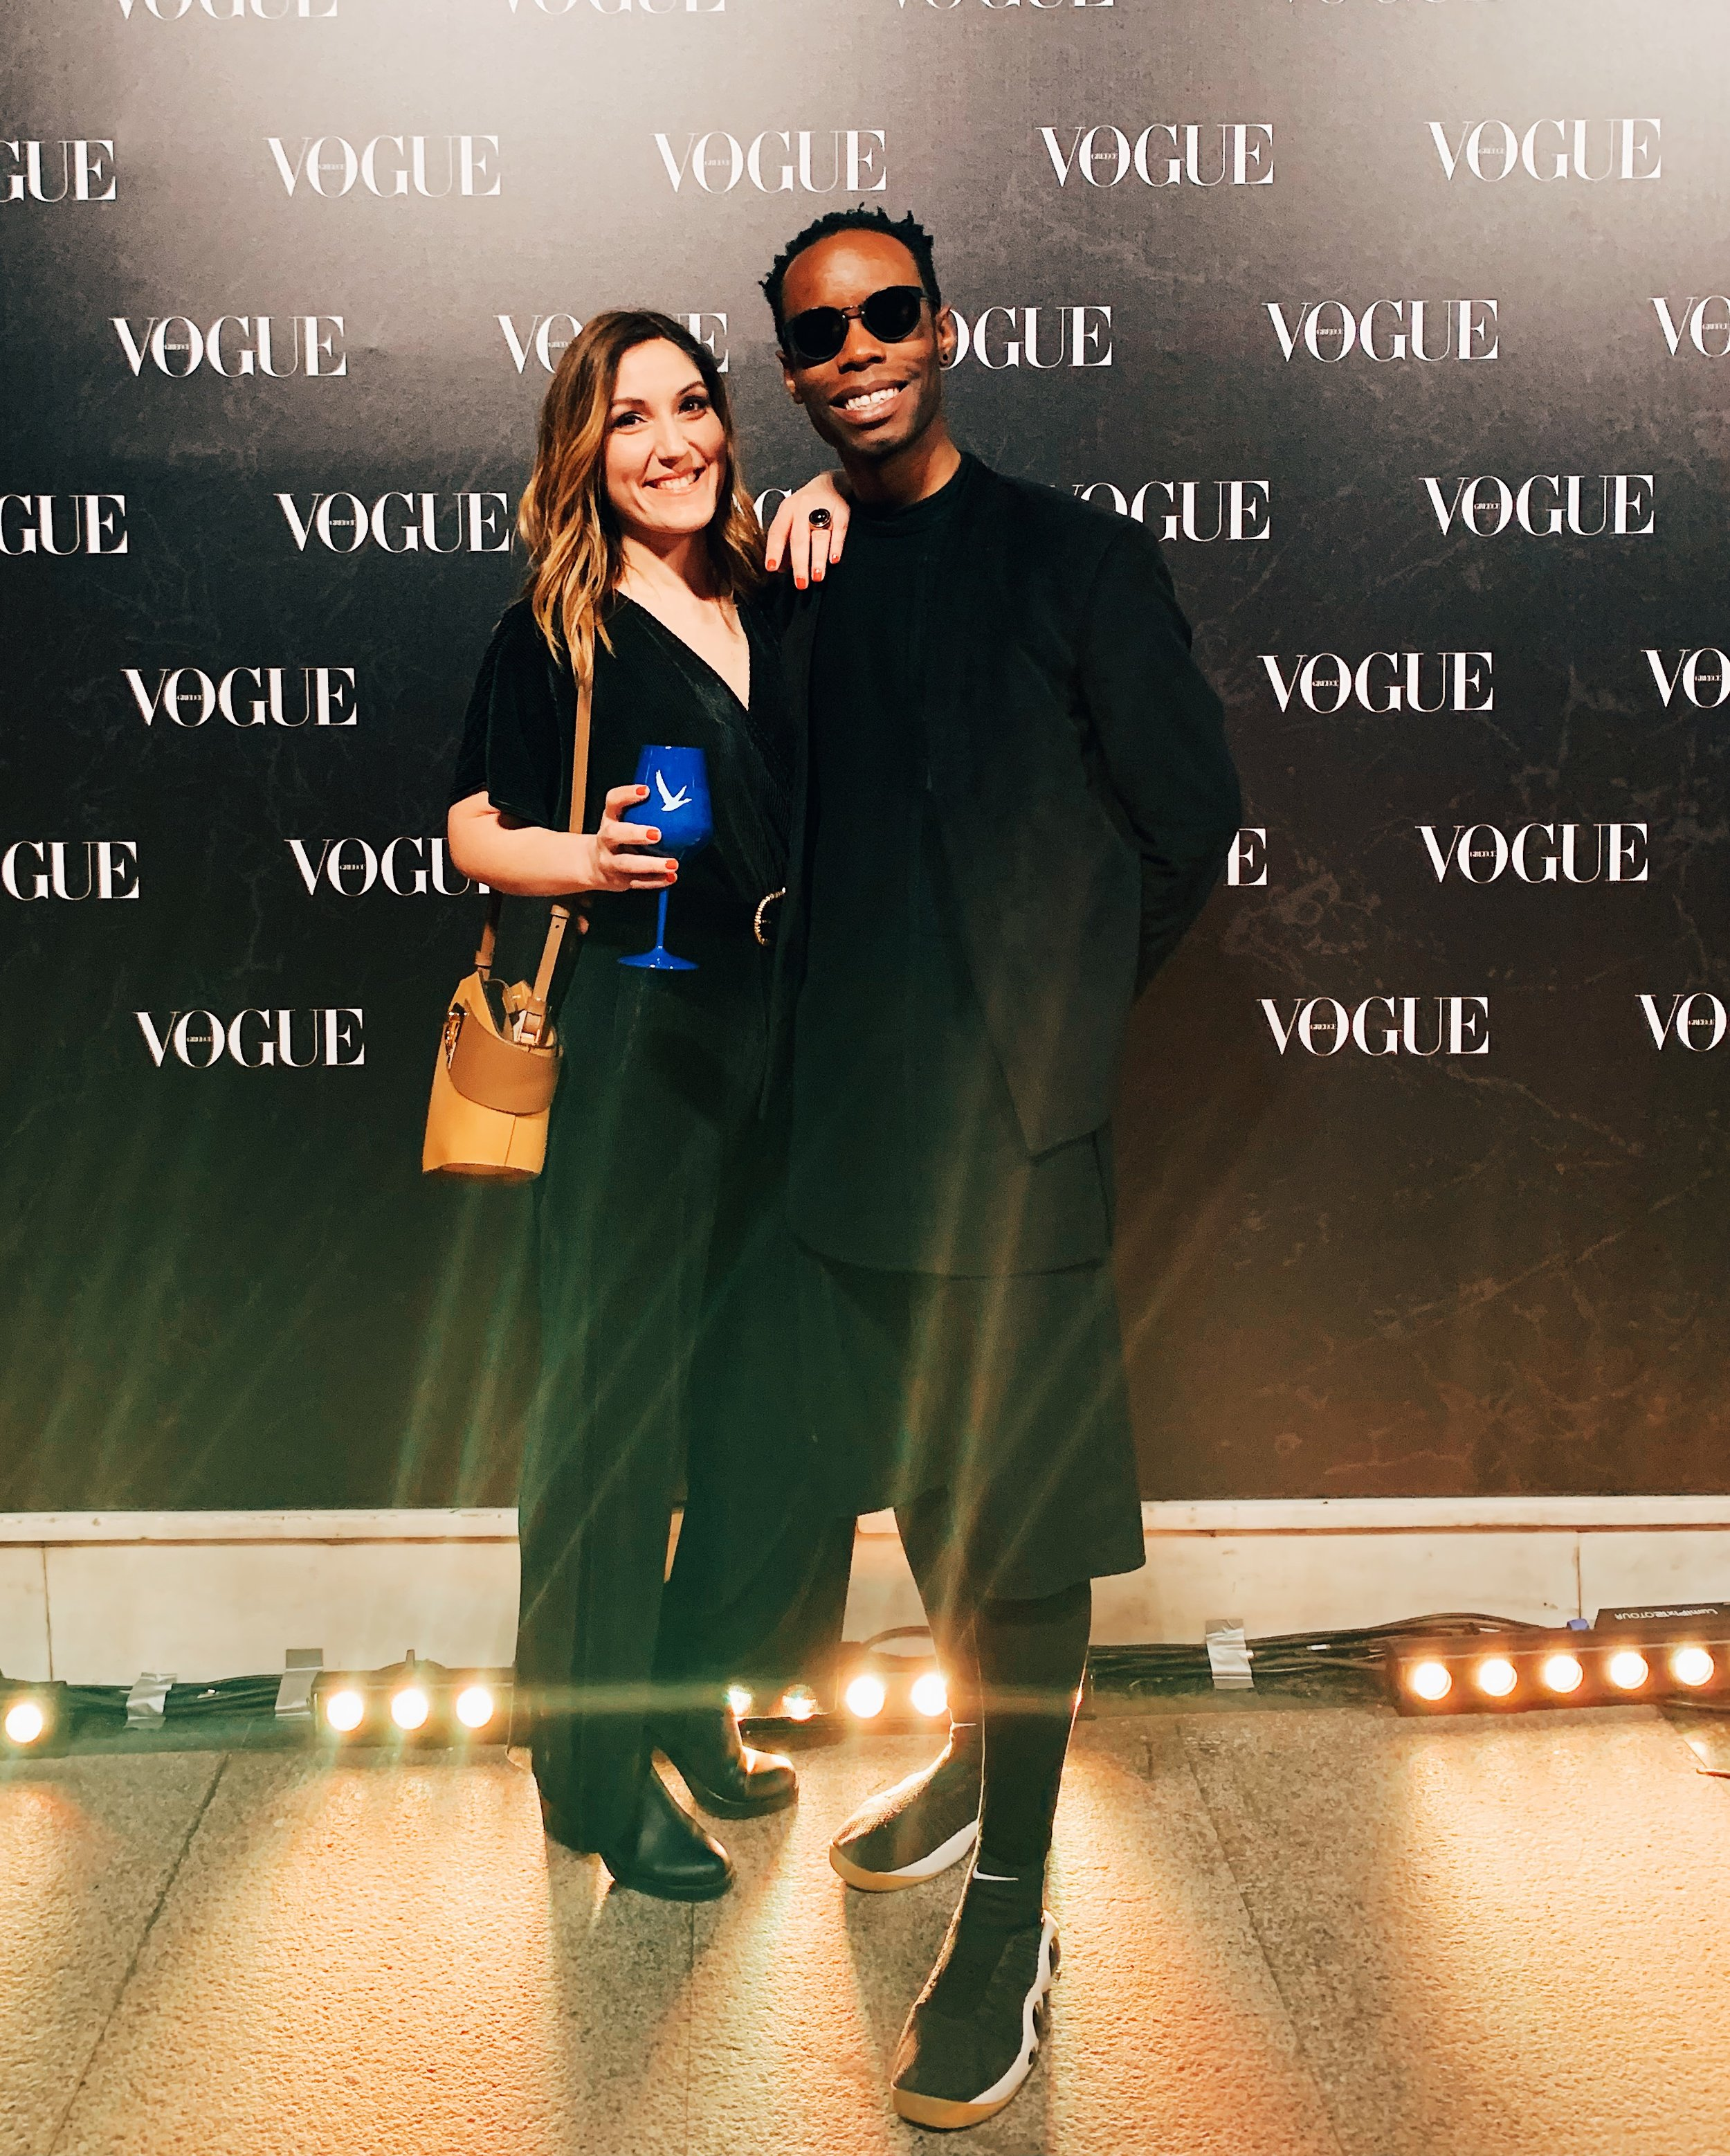 Dimitra Koutsi and Myself at the Vogue Greece Launch Event